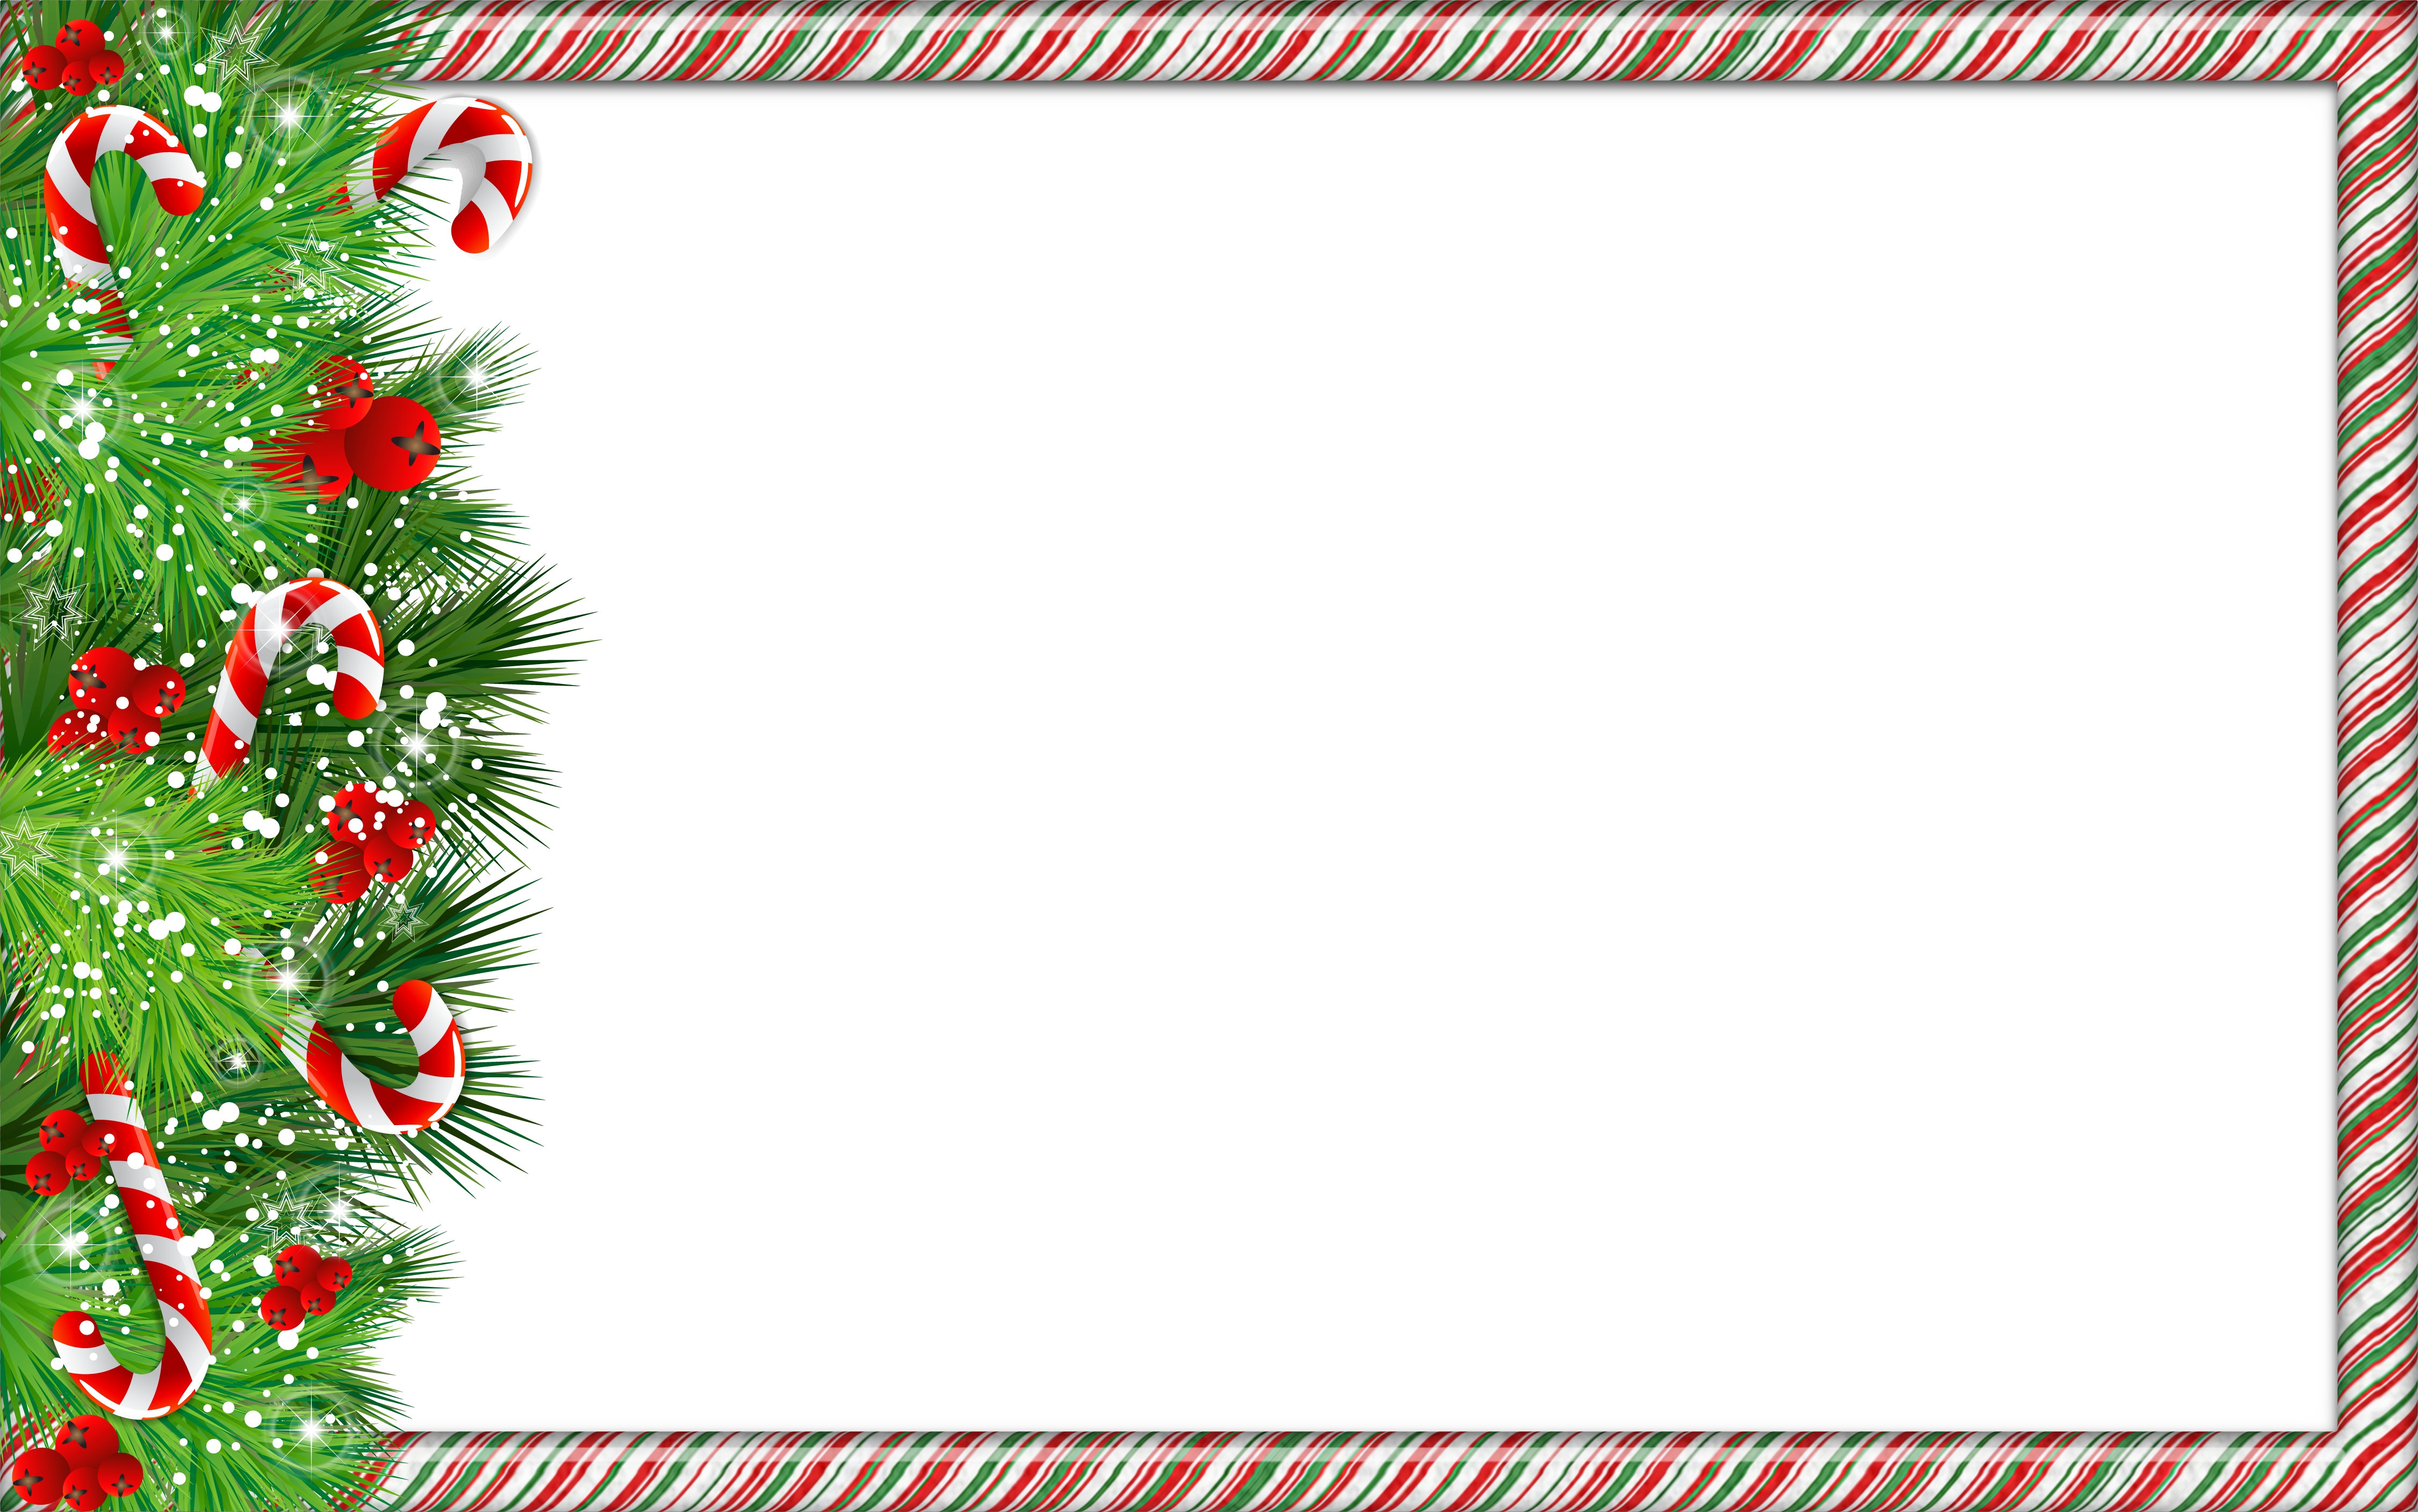 1000 images about Christmas Frames u0026amp; Wallpaper on Pinterest | Playboy, Hd wallpaper and